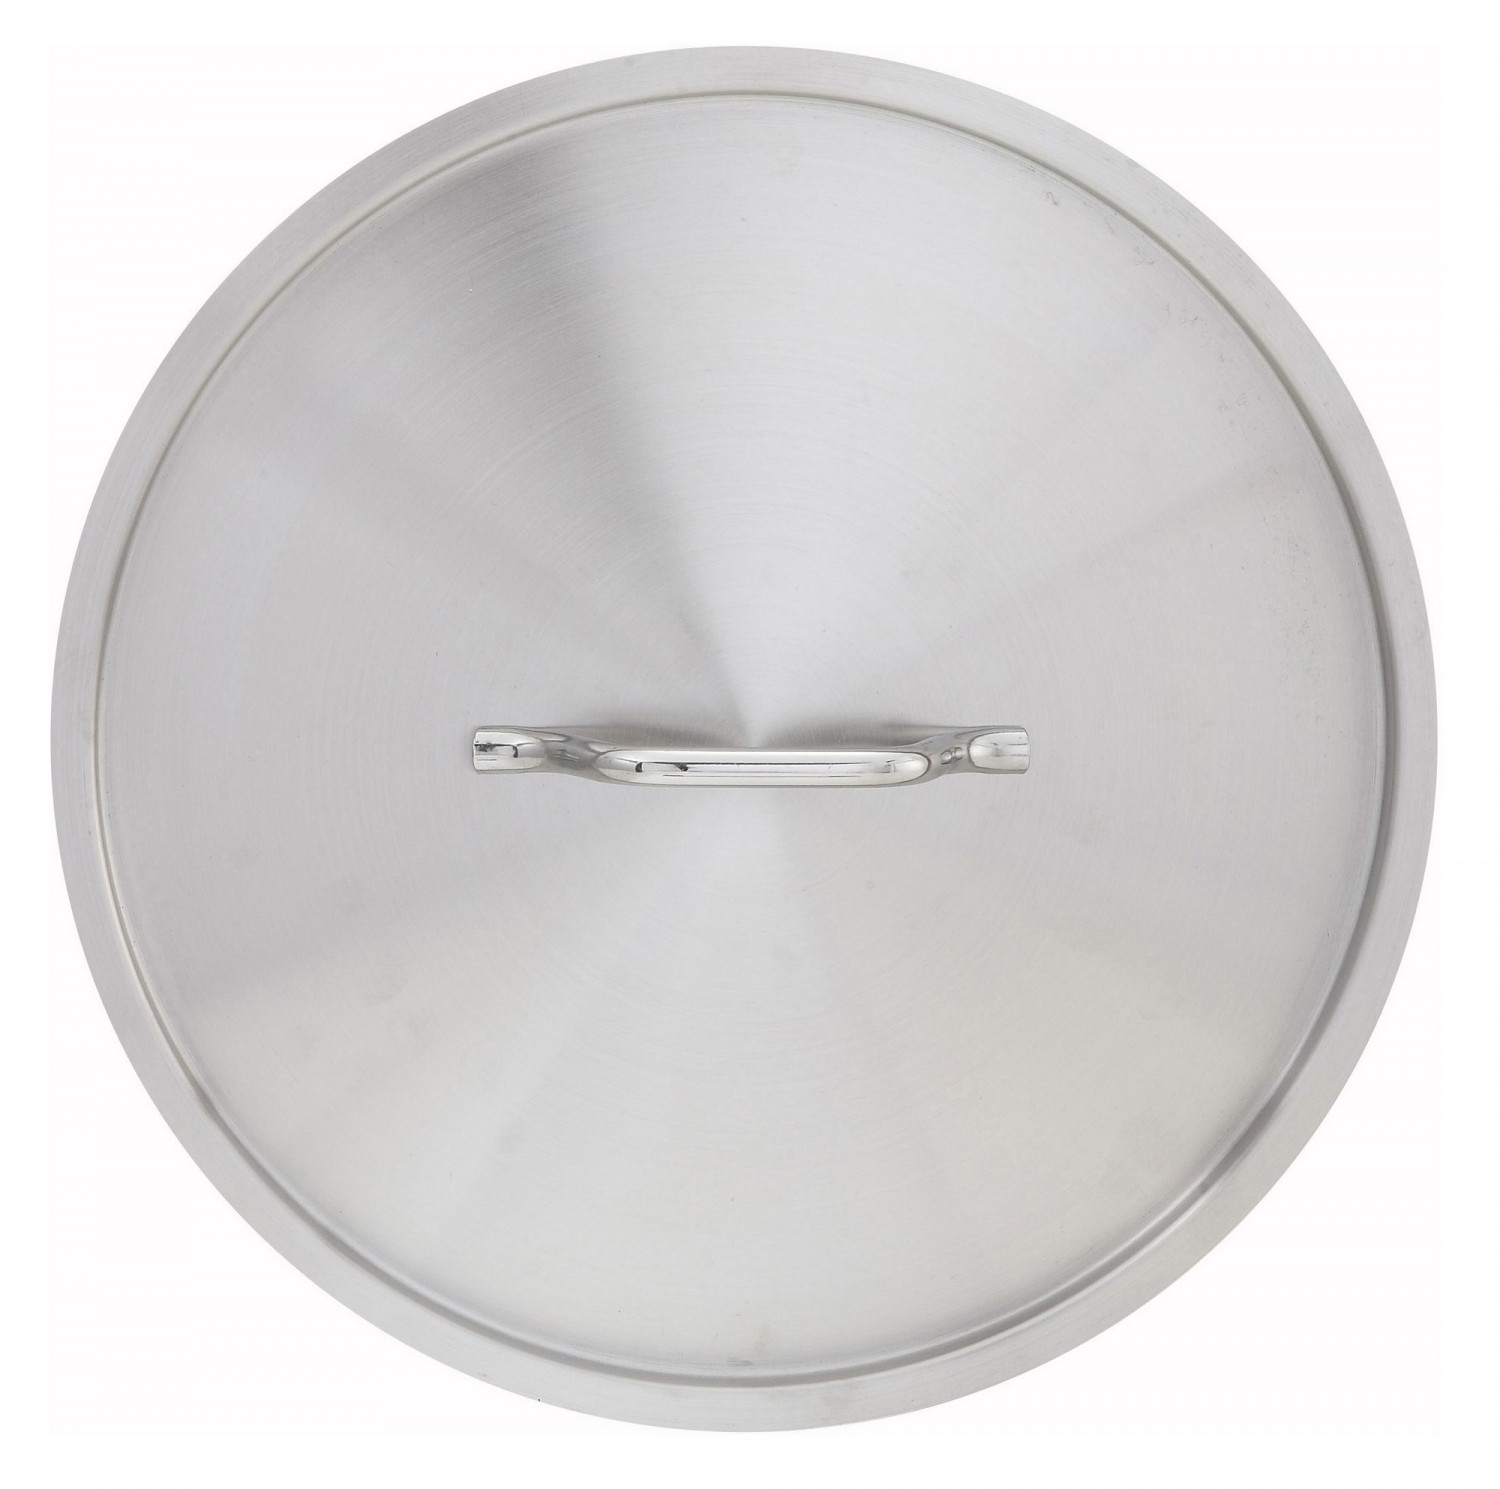 Winco SSTC-40 Stainless Steel Cover for SST-40, SSLB-20